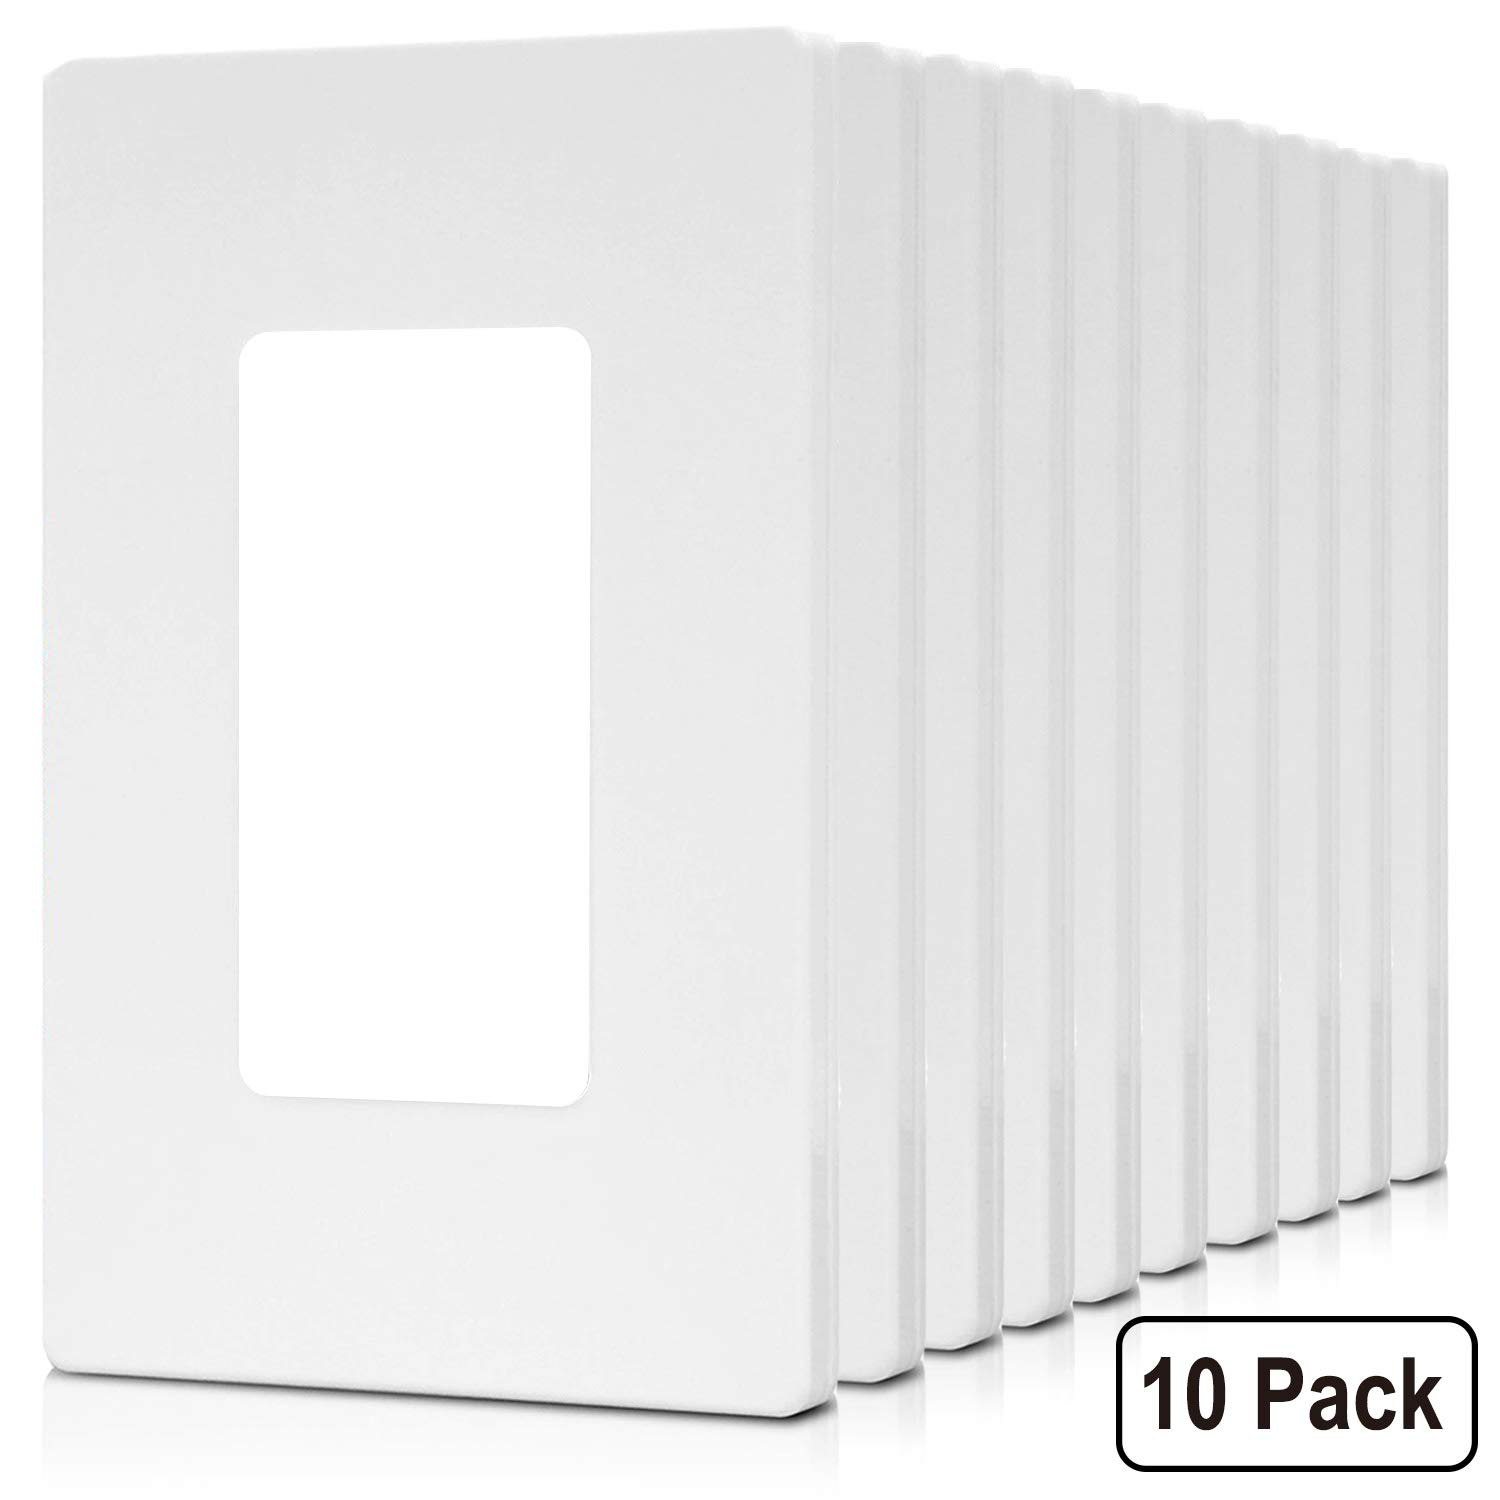 [10 Pack] BESTTEN Screwless Wall Plates, 1 Gang Standard Outlet Covers without Visible Screws, Compatible with Light Switch, GFCI, Decor and USB Receptacle, Unbreakable PC, UL Listed, White